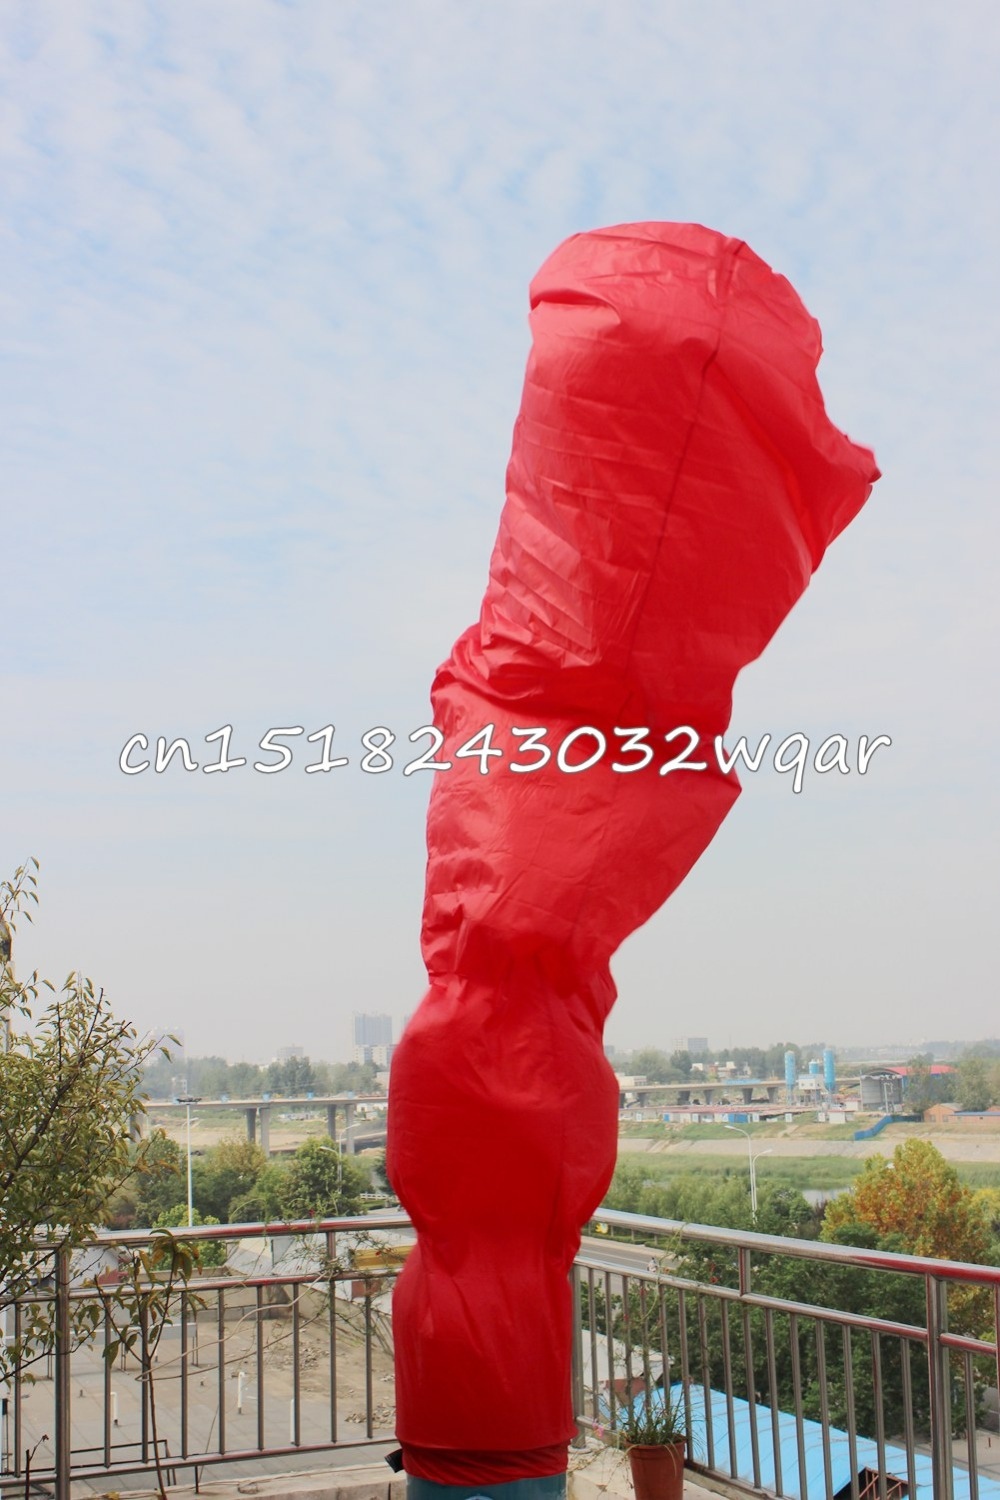 Inflatable Toys delivery 4M 13FT Inflatable Tube Sky Dancer Air Dancer HY-03 NO Blowers Inflatable Toys Shop ads sign ao058m 2m hot selling inflatable advertising helium balloon ball pvc helium balioon inflatable sphere sky balloon for sale